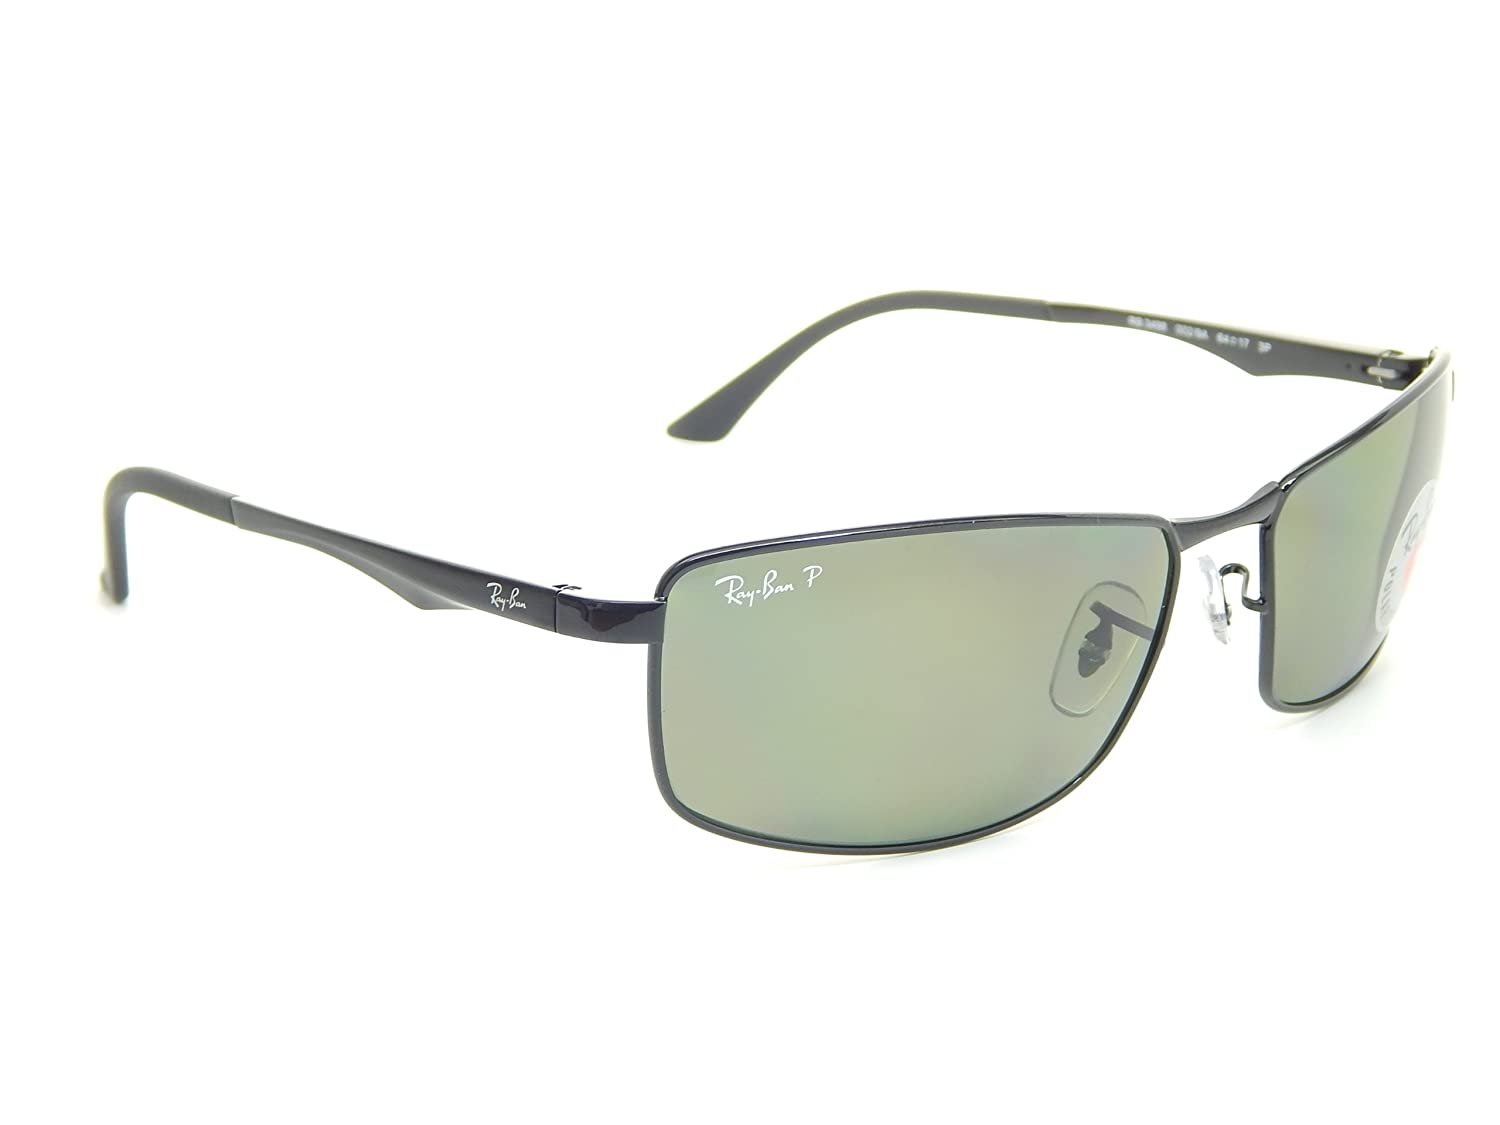 9df6ce5ef46 Amazon.com  New Ray Ban RB3498 002 9A Black Polarized Green 64mm  Sunglasses  Clothing